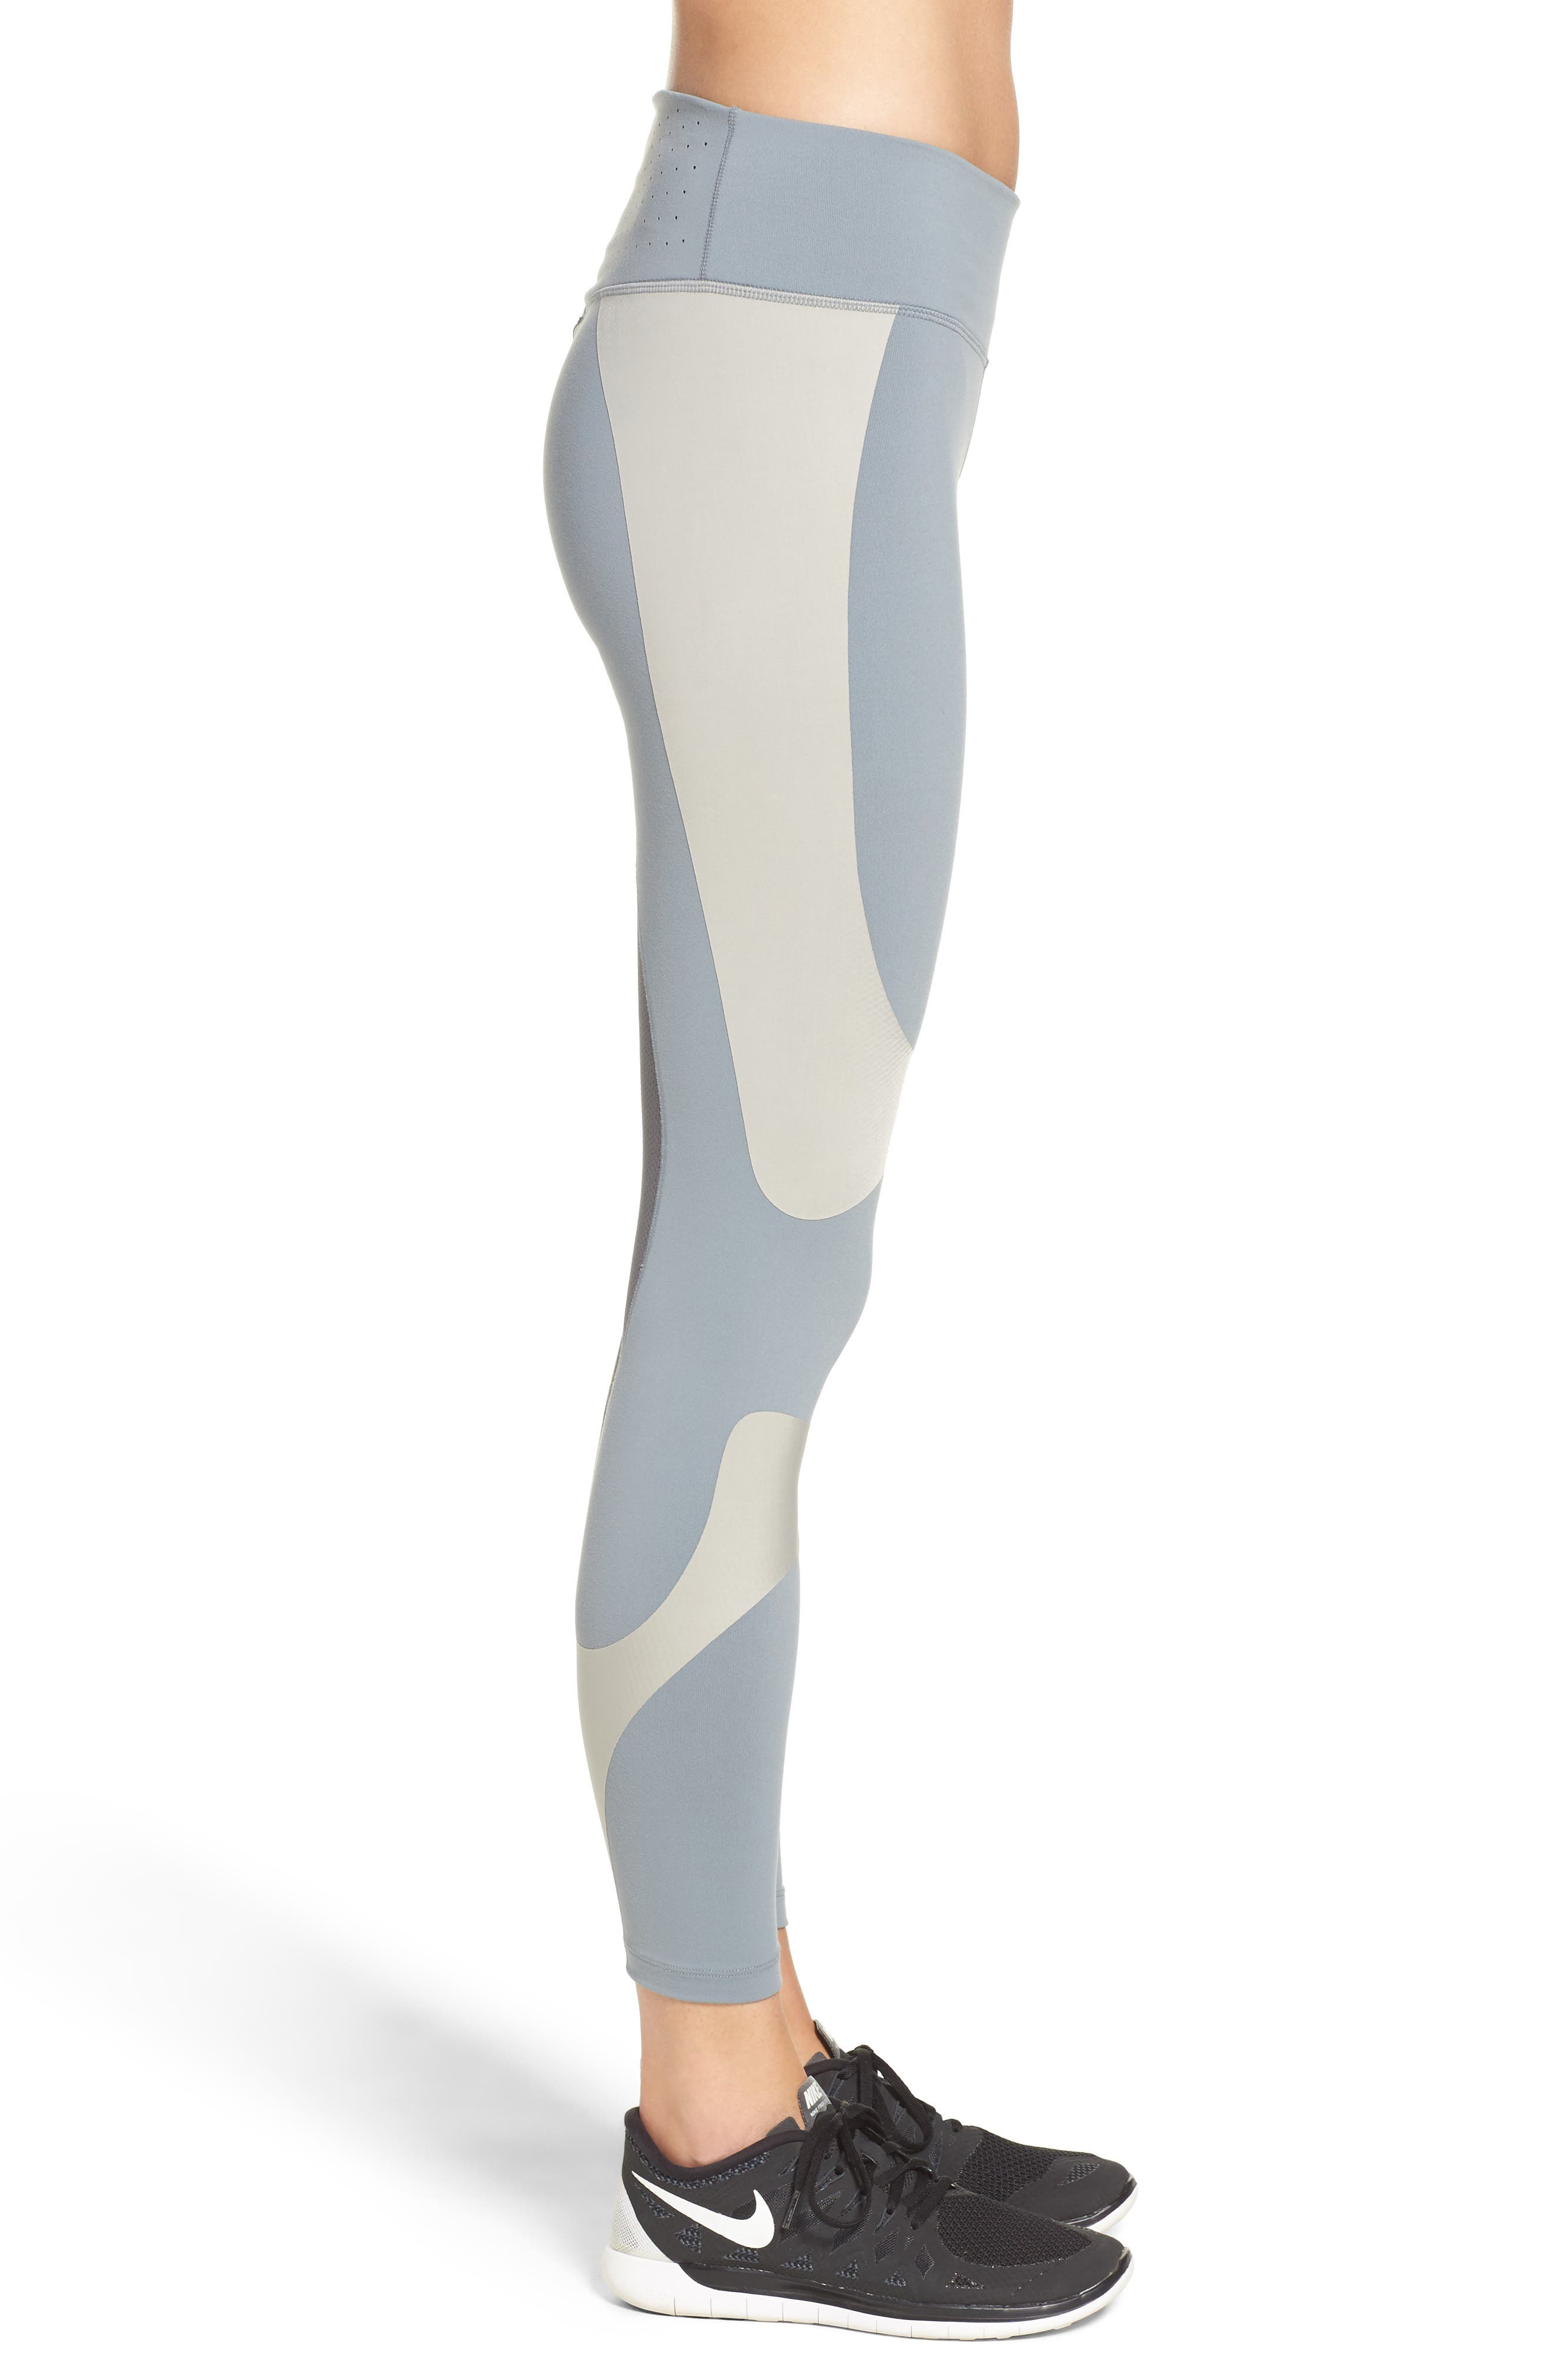 Power Legend Training Tights,                             Alternate thumbnail 3, color,                             Grey/ Cobblestone/ Grey/ Black